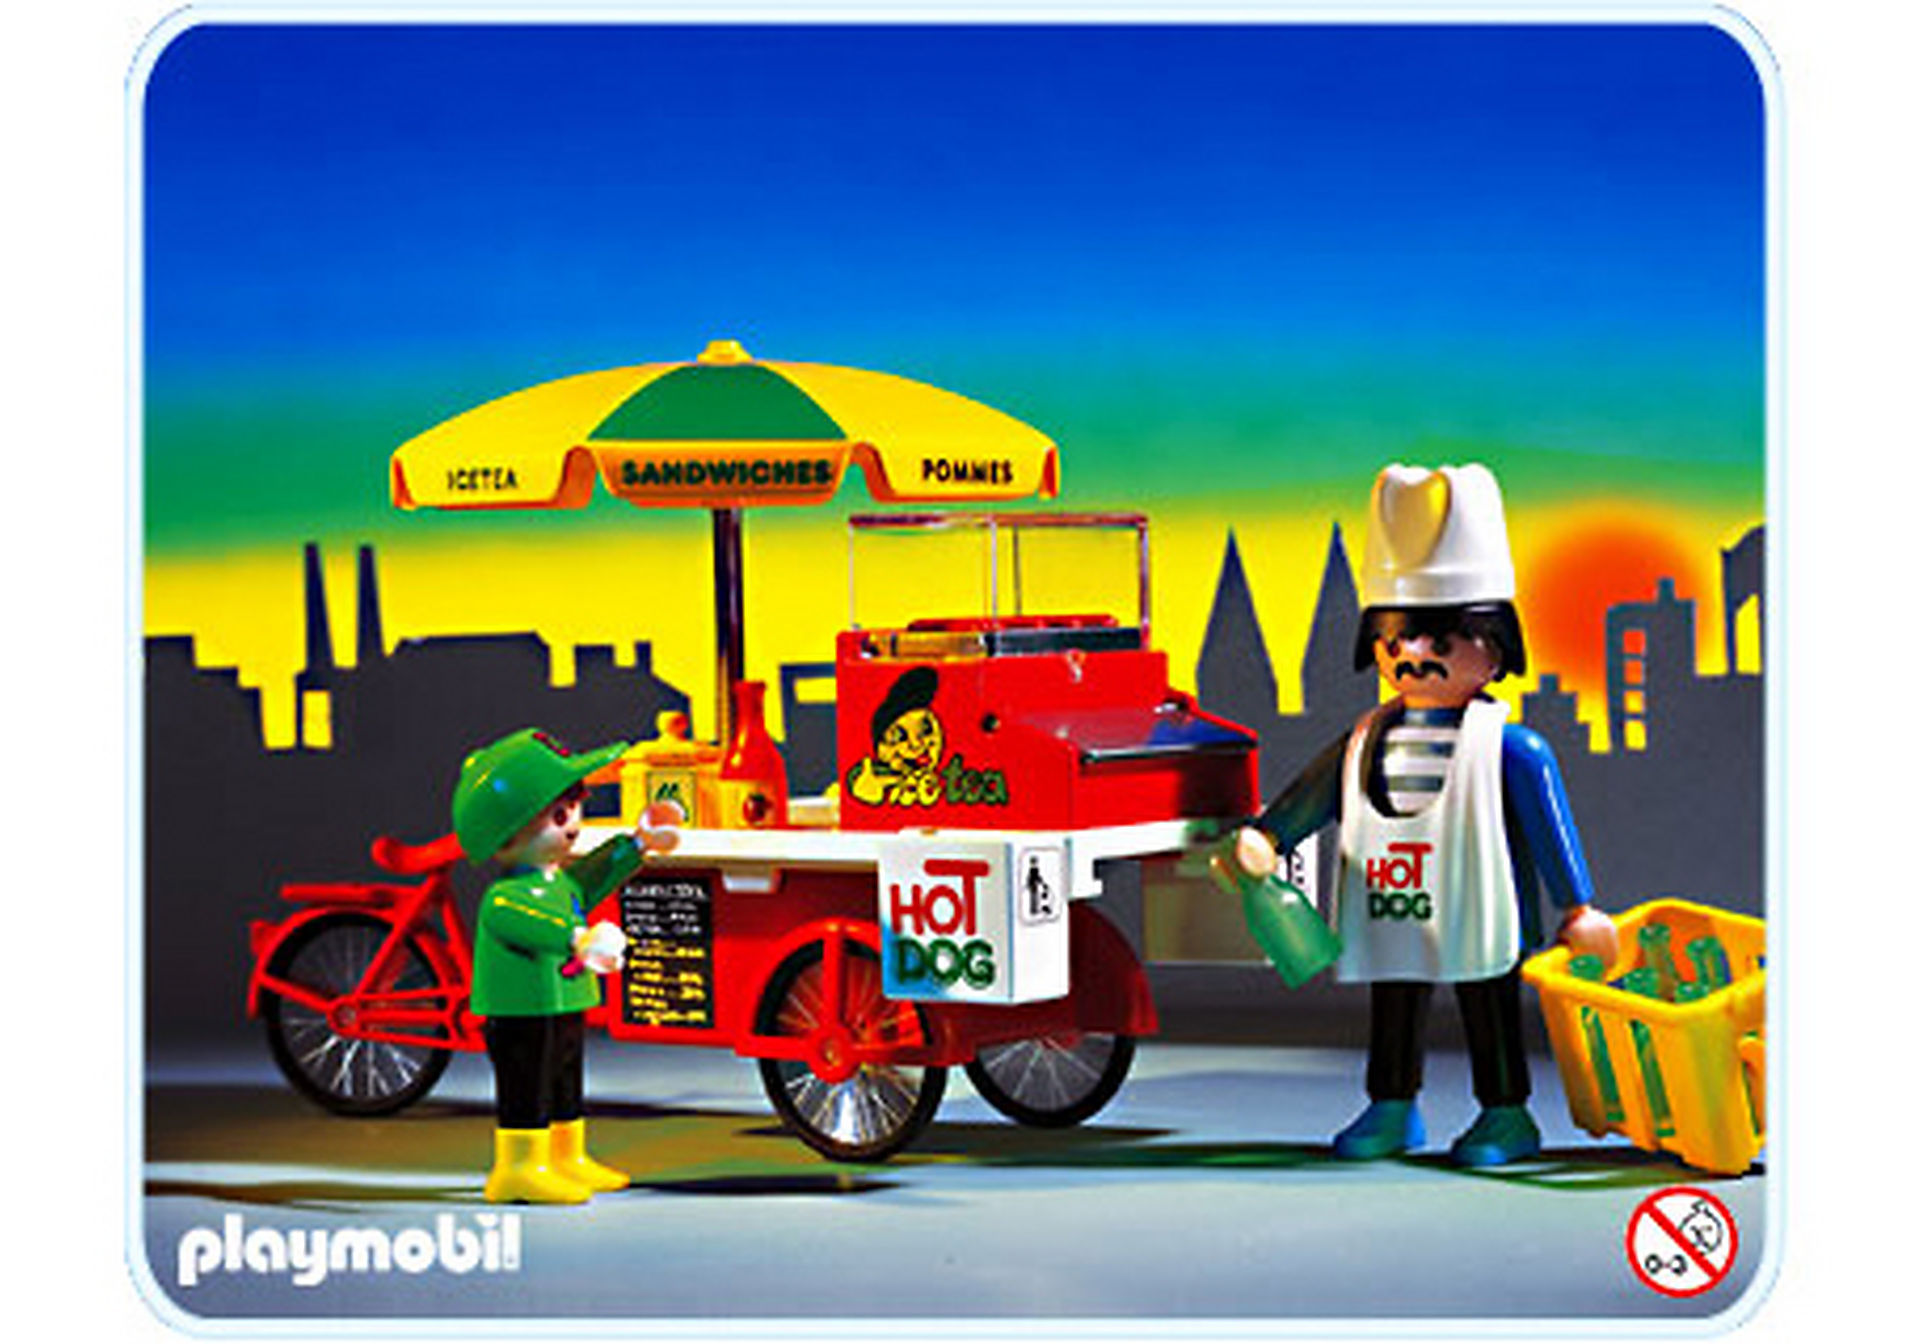 http://media.playmobil.com/i/playmobil/3848-A_product_detail/Hot-Dog-Verkäufer